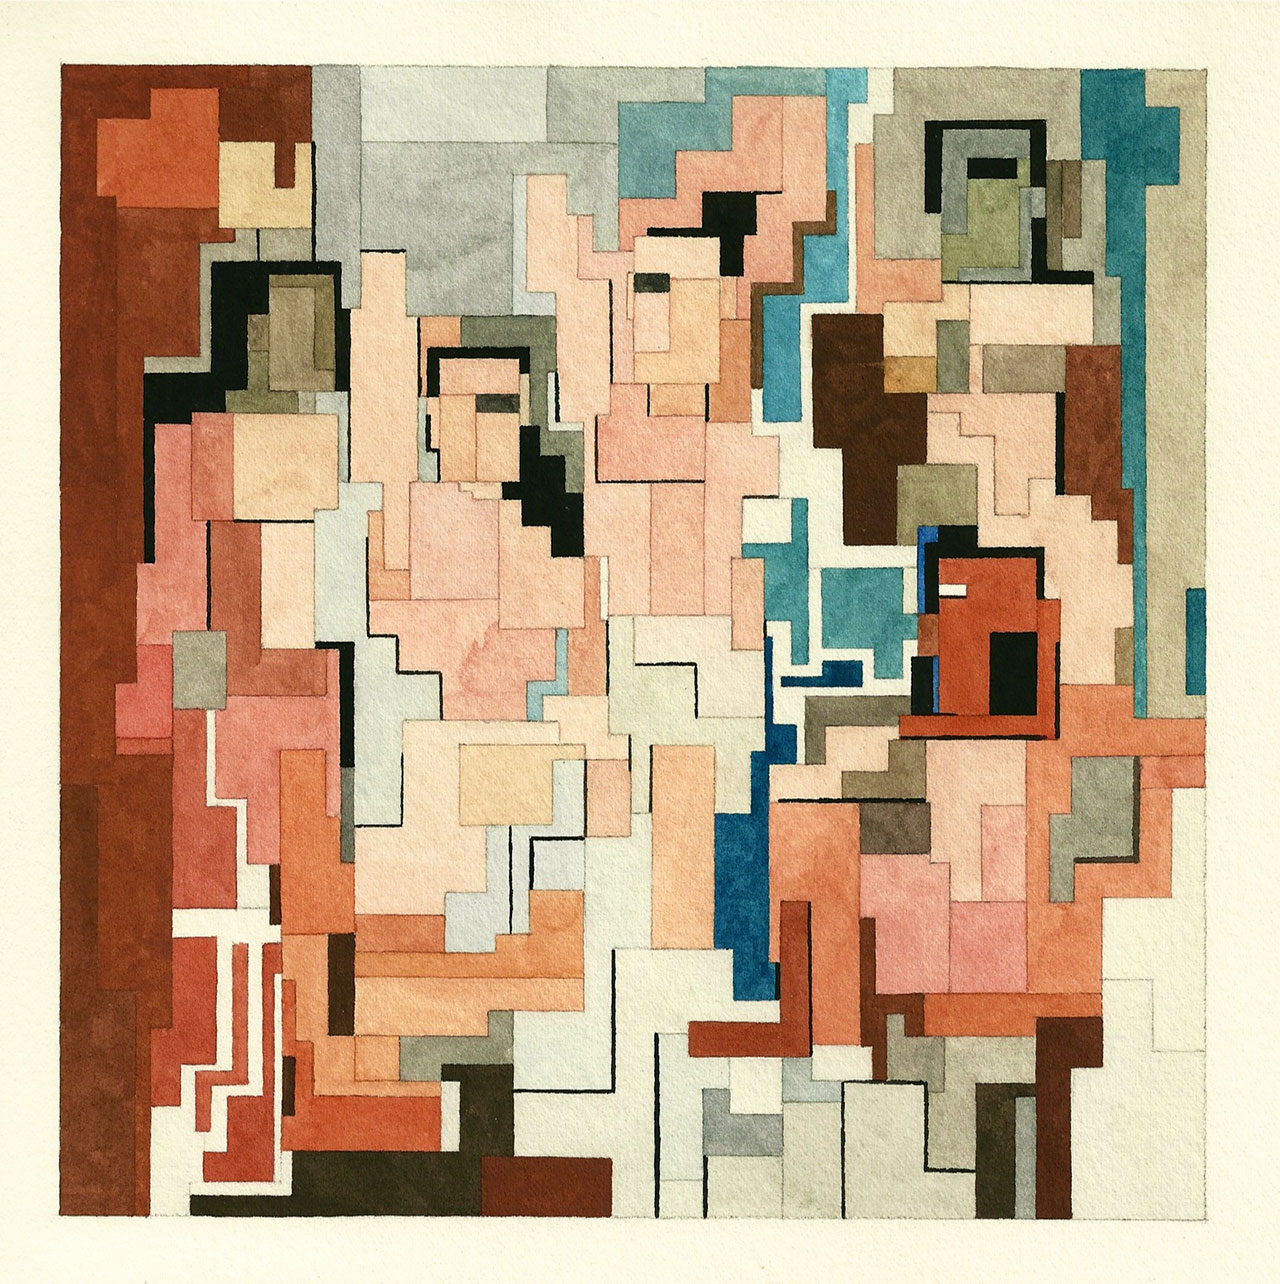 Les Demoiselles d'Avignon, Art History 101 series by Adam Lister.(Original Painting by Pablo Picasso, 1907).